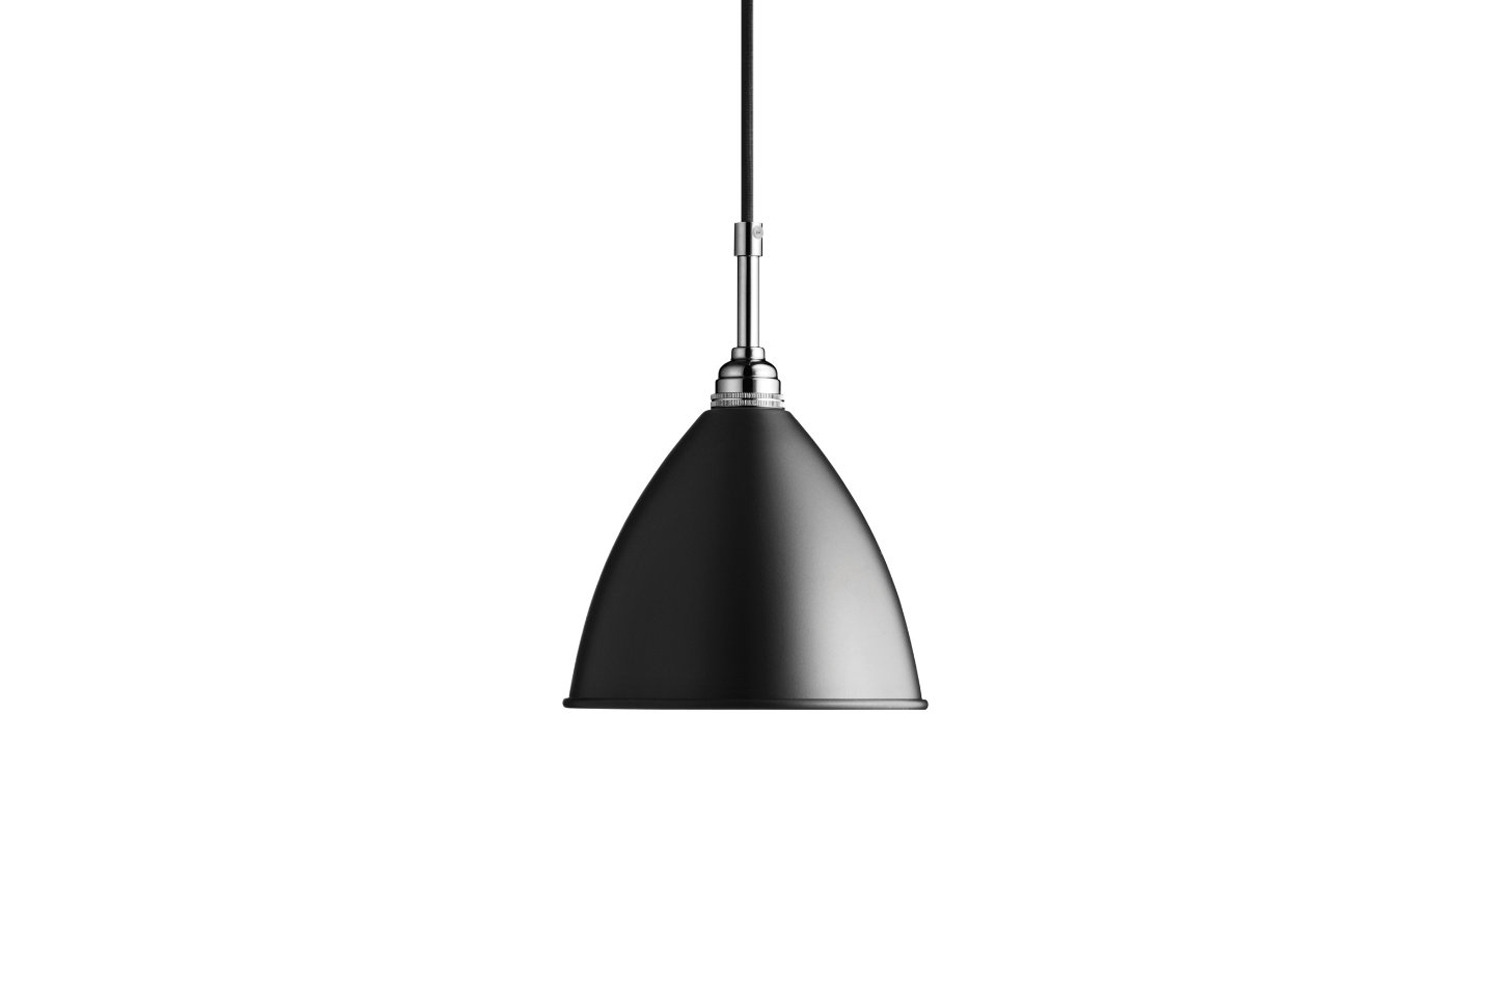 The Gubi Bestlite BL9 Pendant in chrome with black starts at $345 for the small at Lumens.